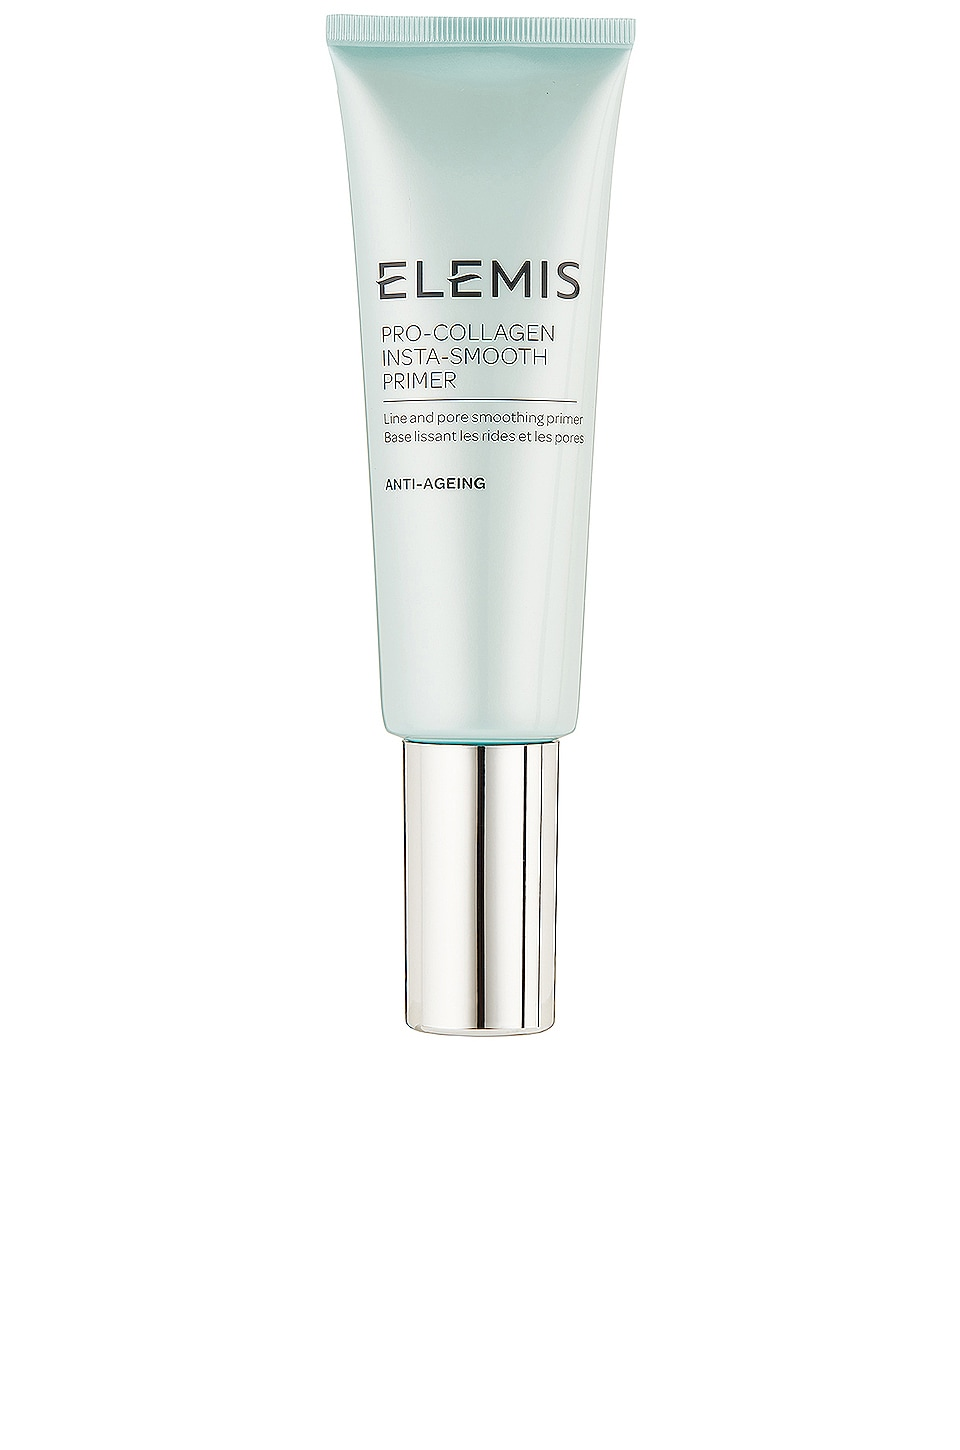 ELEMIS Pro-Collagen Insta-Smooth Primer